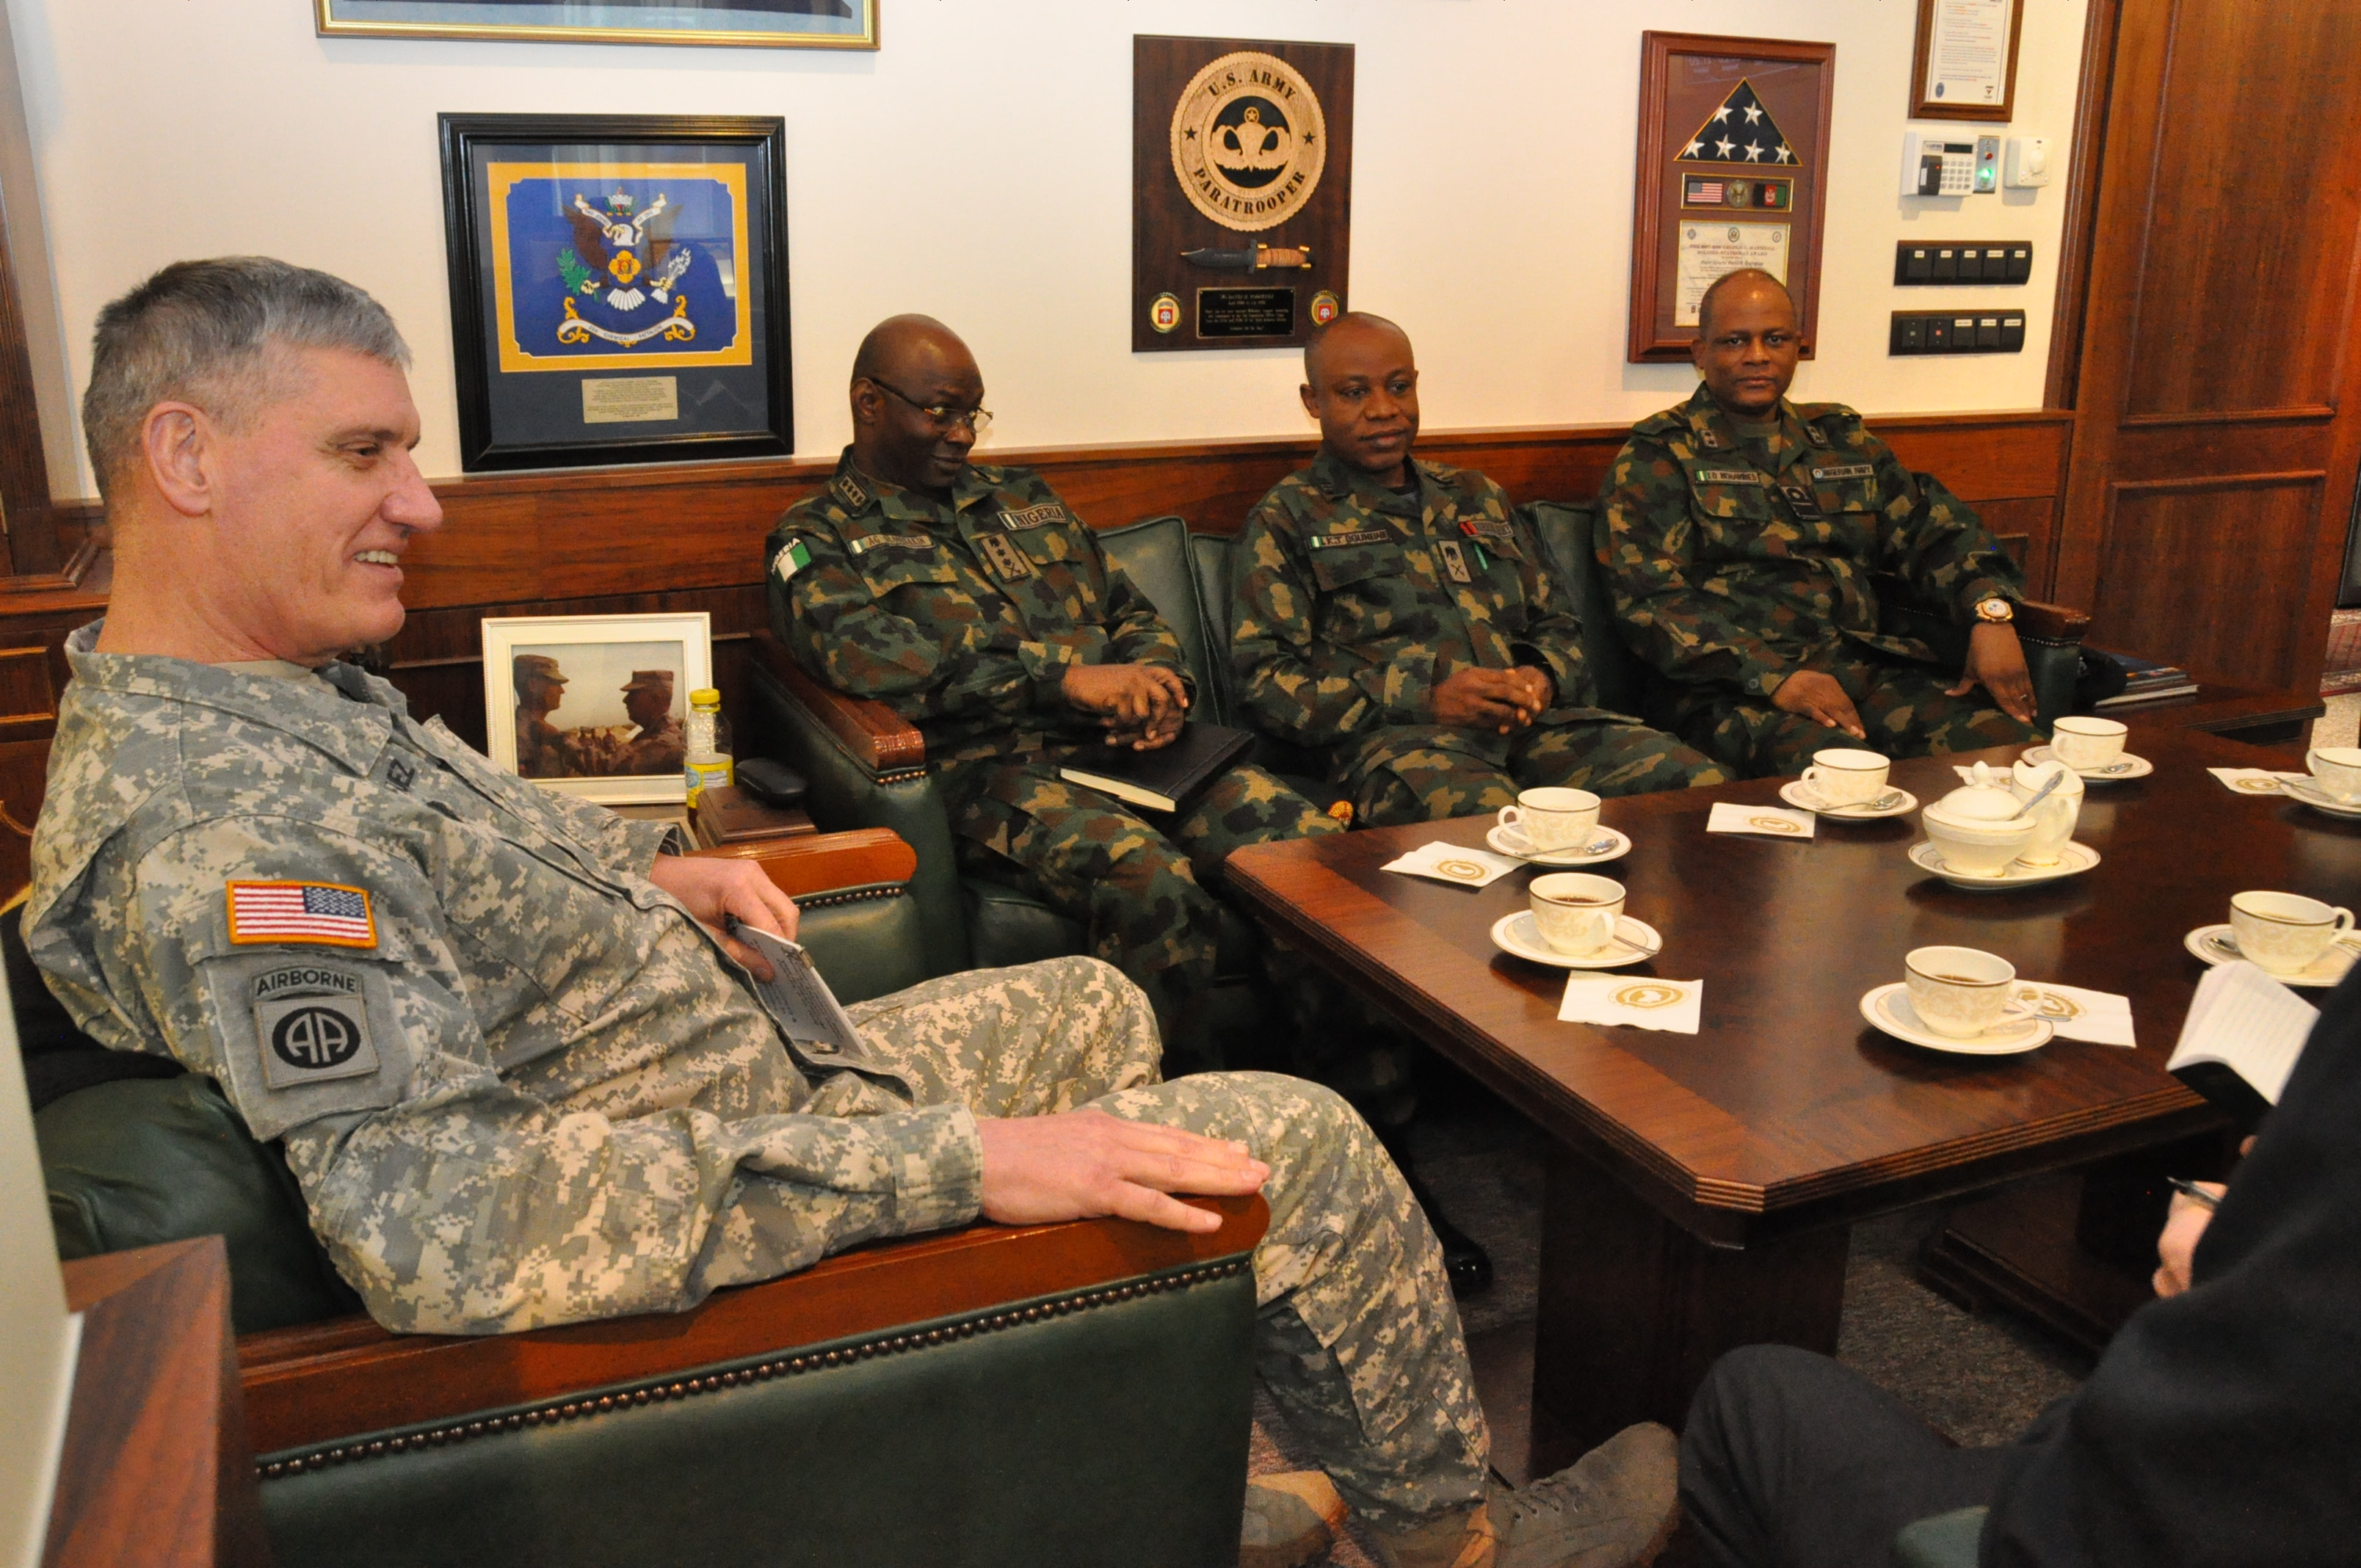 Gen. David Rodriguez, commander, U.S. Africa Command (left) meets with Gen. Abayomi Olonisakin Nigeria chief of defence staff (second from left) and several of his senior military leaders during an office call.  AFRICOM hosted a two-day meeting that brought together the component commanders and several senior members of the Nigerian military.  The purpose of the visit was to reinforce the importance of a strong US-Nigeria security cooperation relationship, with topics focused on ways to counter terrorism, joint operations, logistics and maritime security in the Gulf of Guinea, Feb. 10, 2016, U.S. Army Garrison Stuttgart, Germany. (Photo by Brenda Law, U.S. Africa Command Public Affairs/RELEASED)